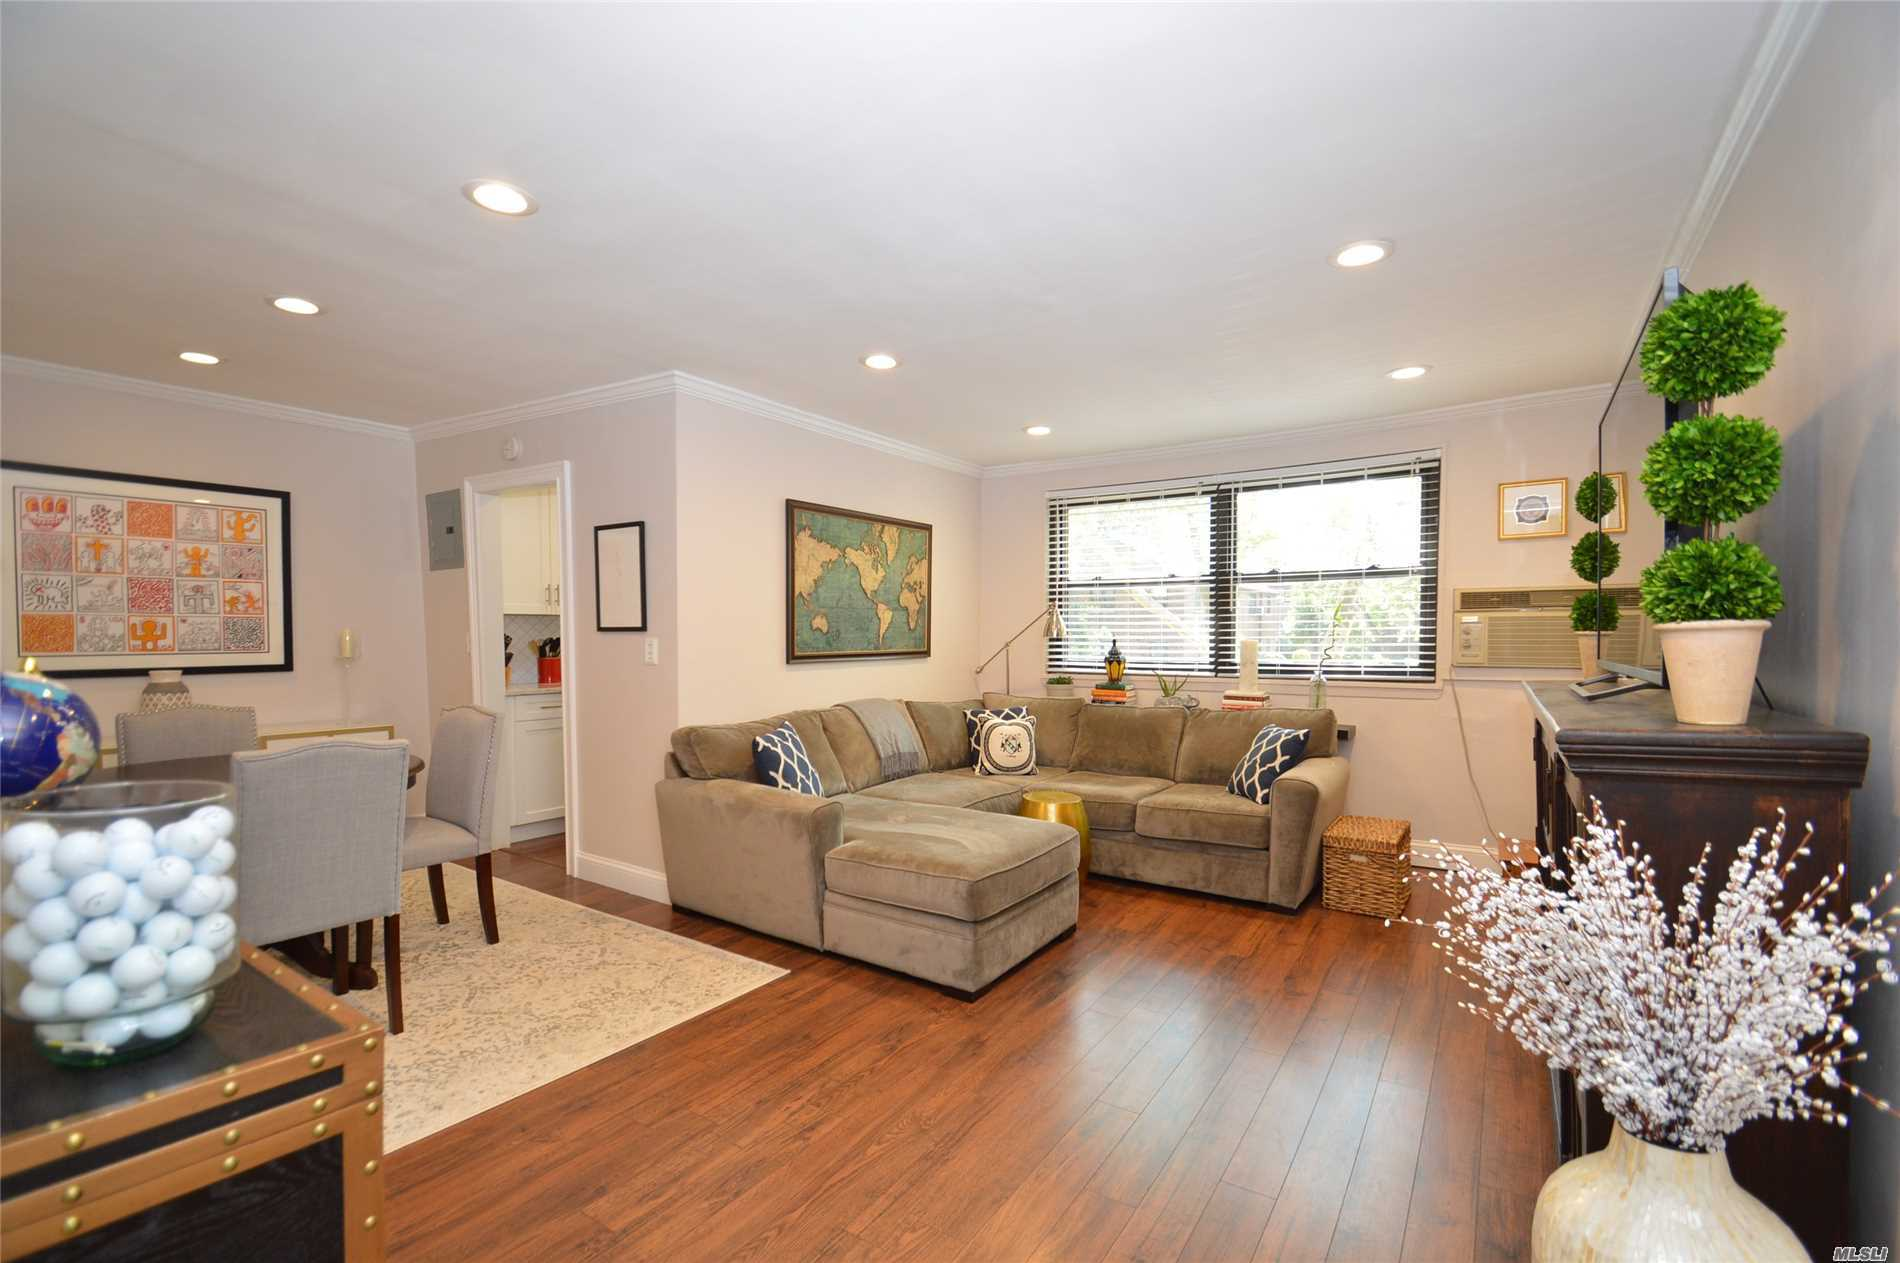 For Fussy Buyers! Totally Renovated And Thoroughly Modern 1 Bedroom Upper. Maintenance Includes Heat, Gas, Electric & Private Sanitation. Custom Closets, Crown Moldings. Just Bring Your Toothbrush.